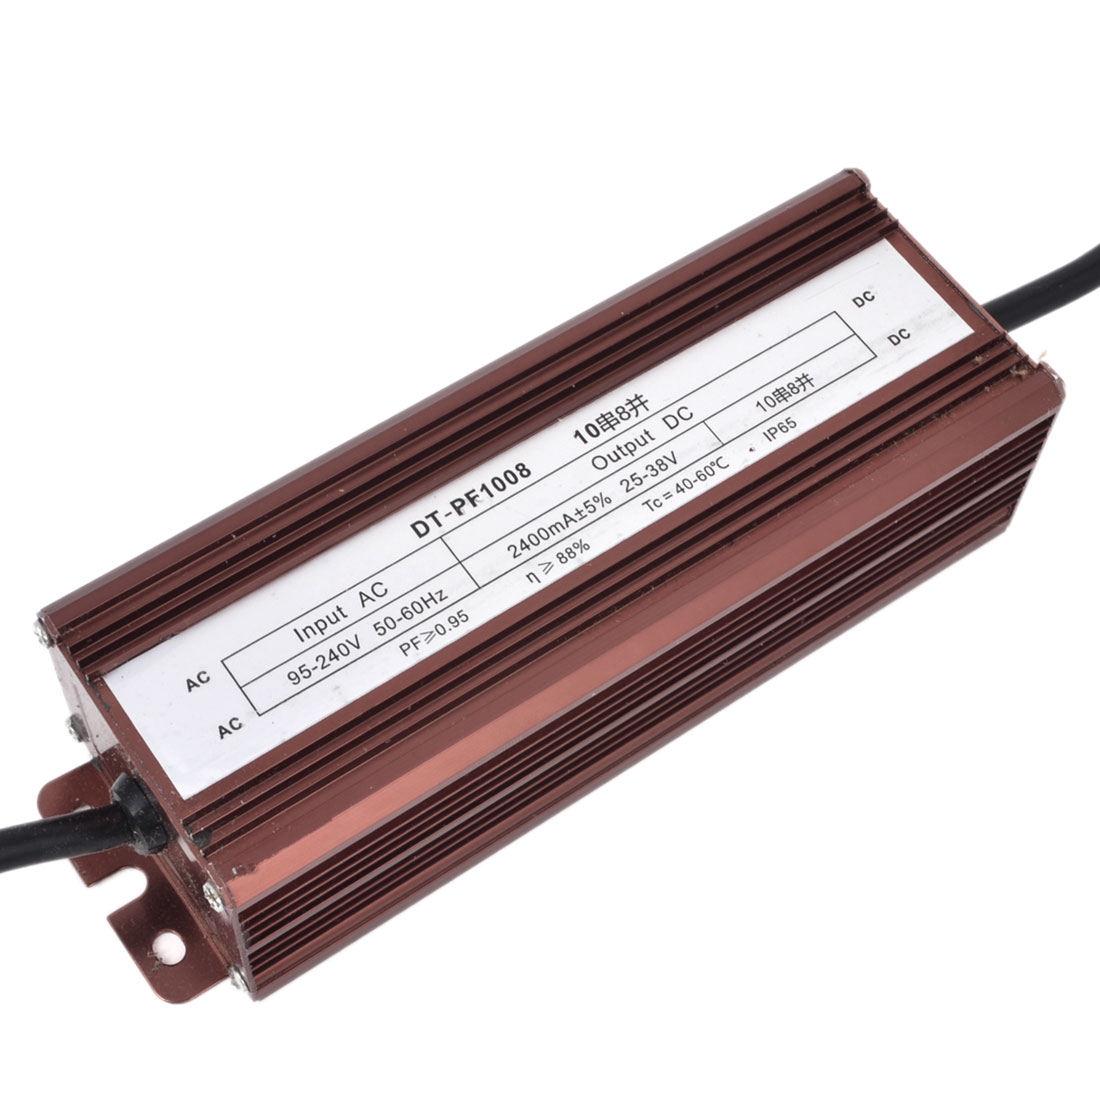 AC 95-240V to DC 25-38V Waterproof High Power LED Driver Transformer 80W